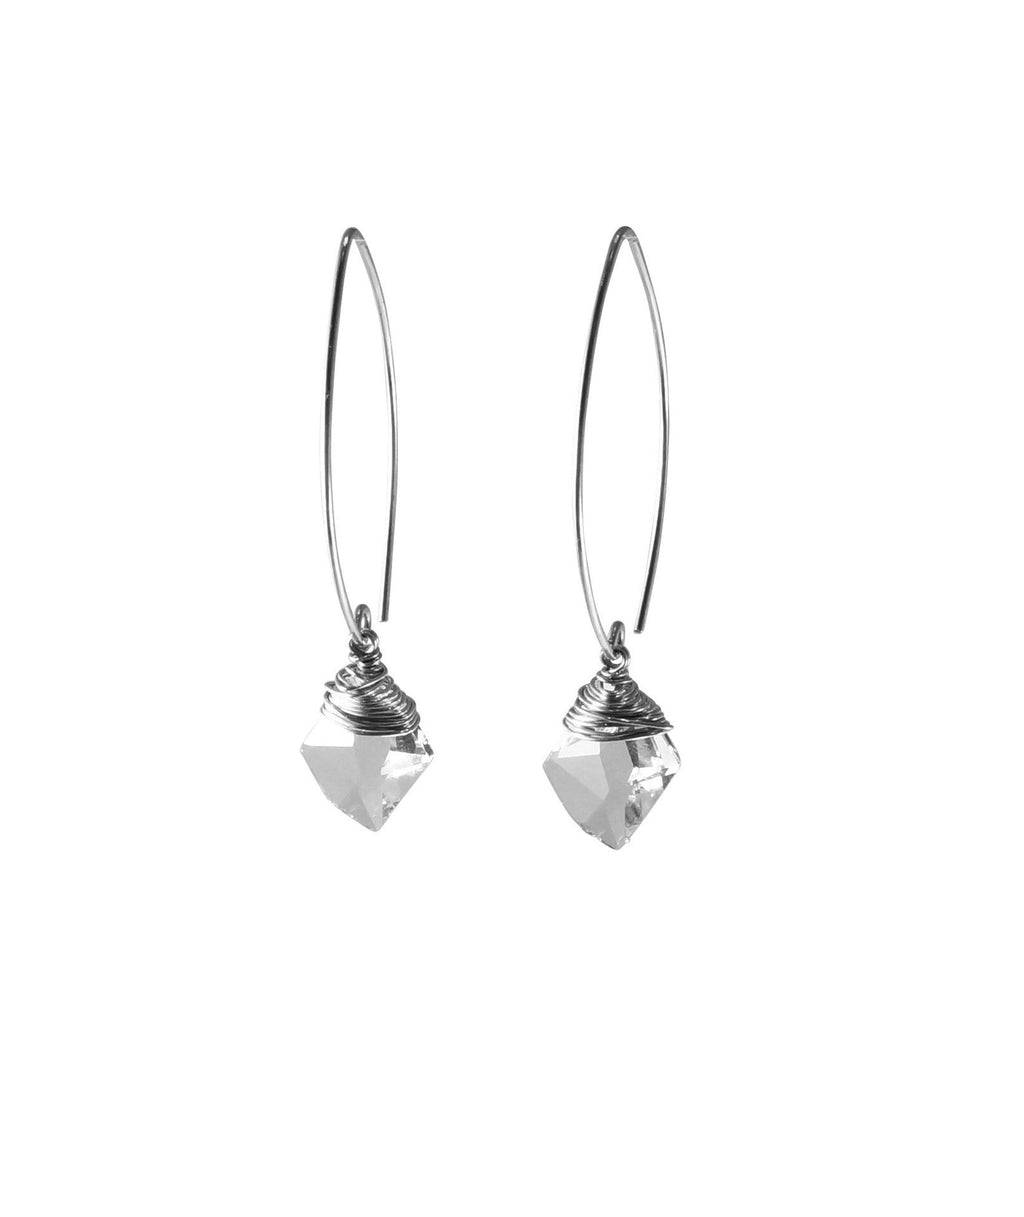 Sterling Silver Swarovski Crystal Beads Earrings